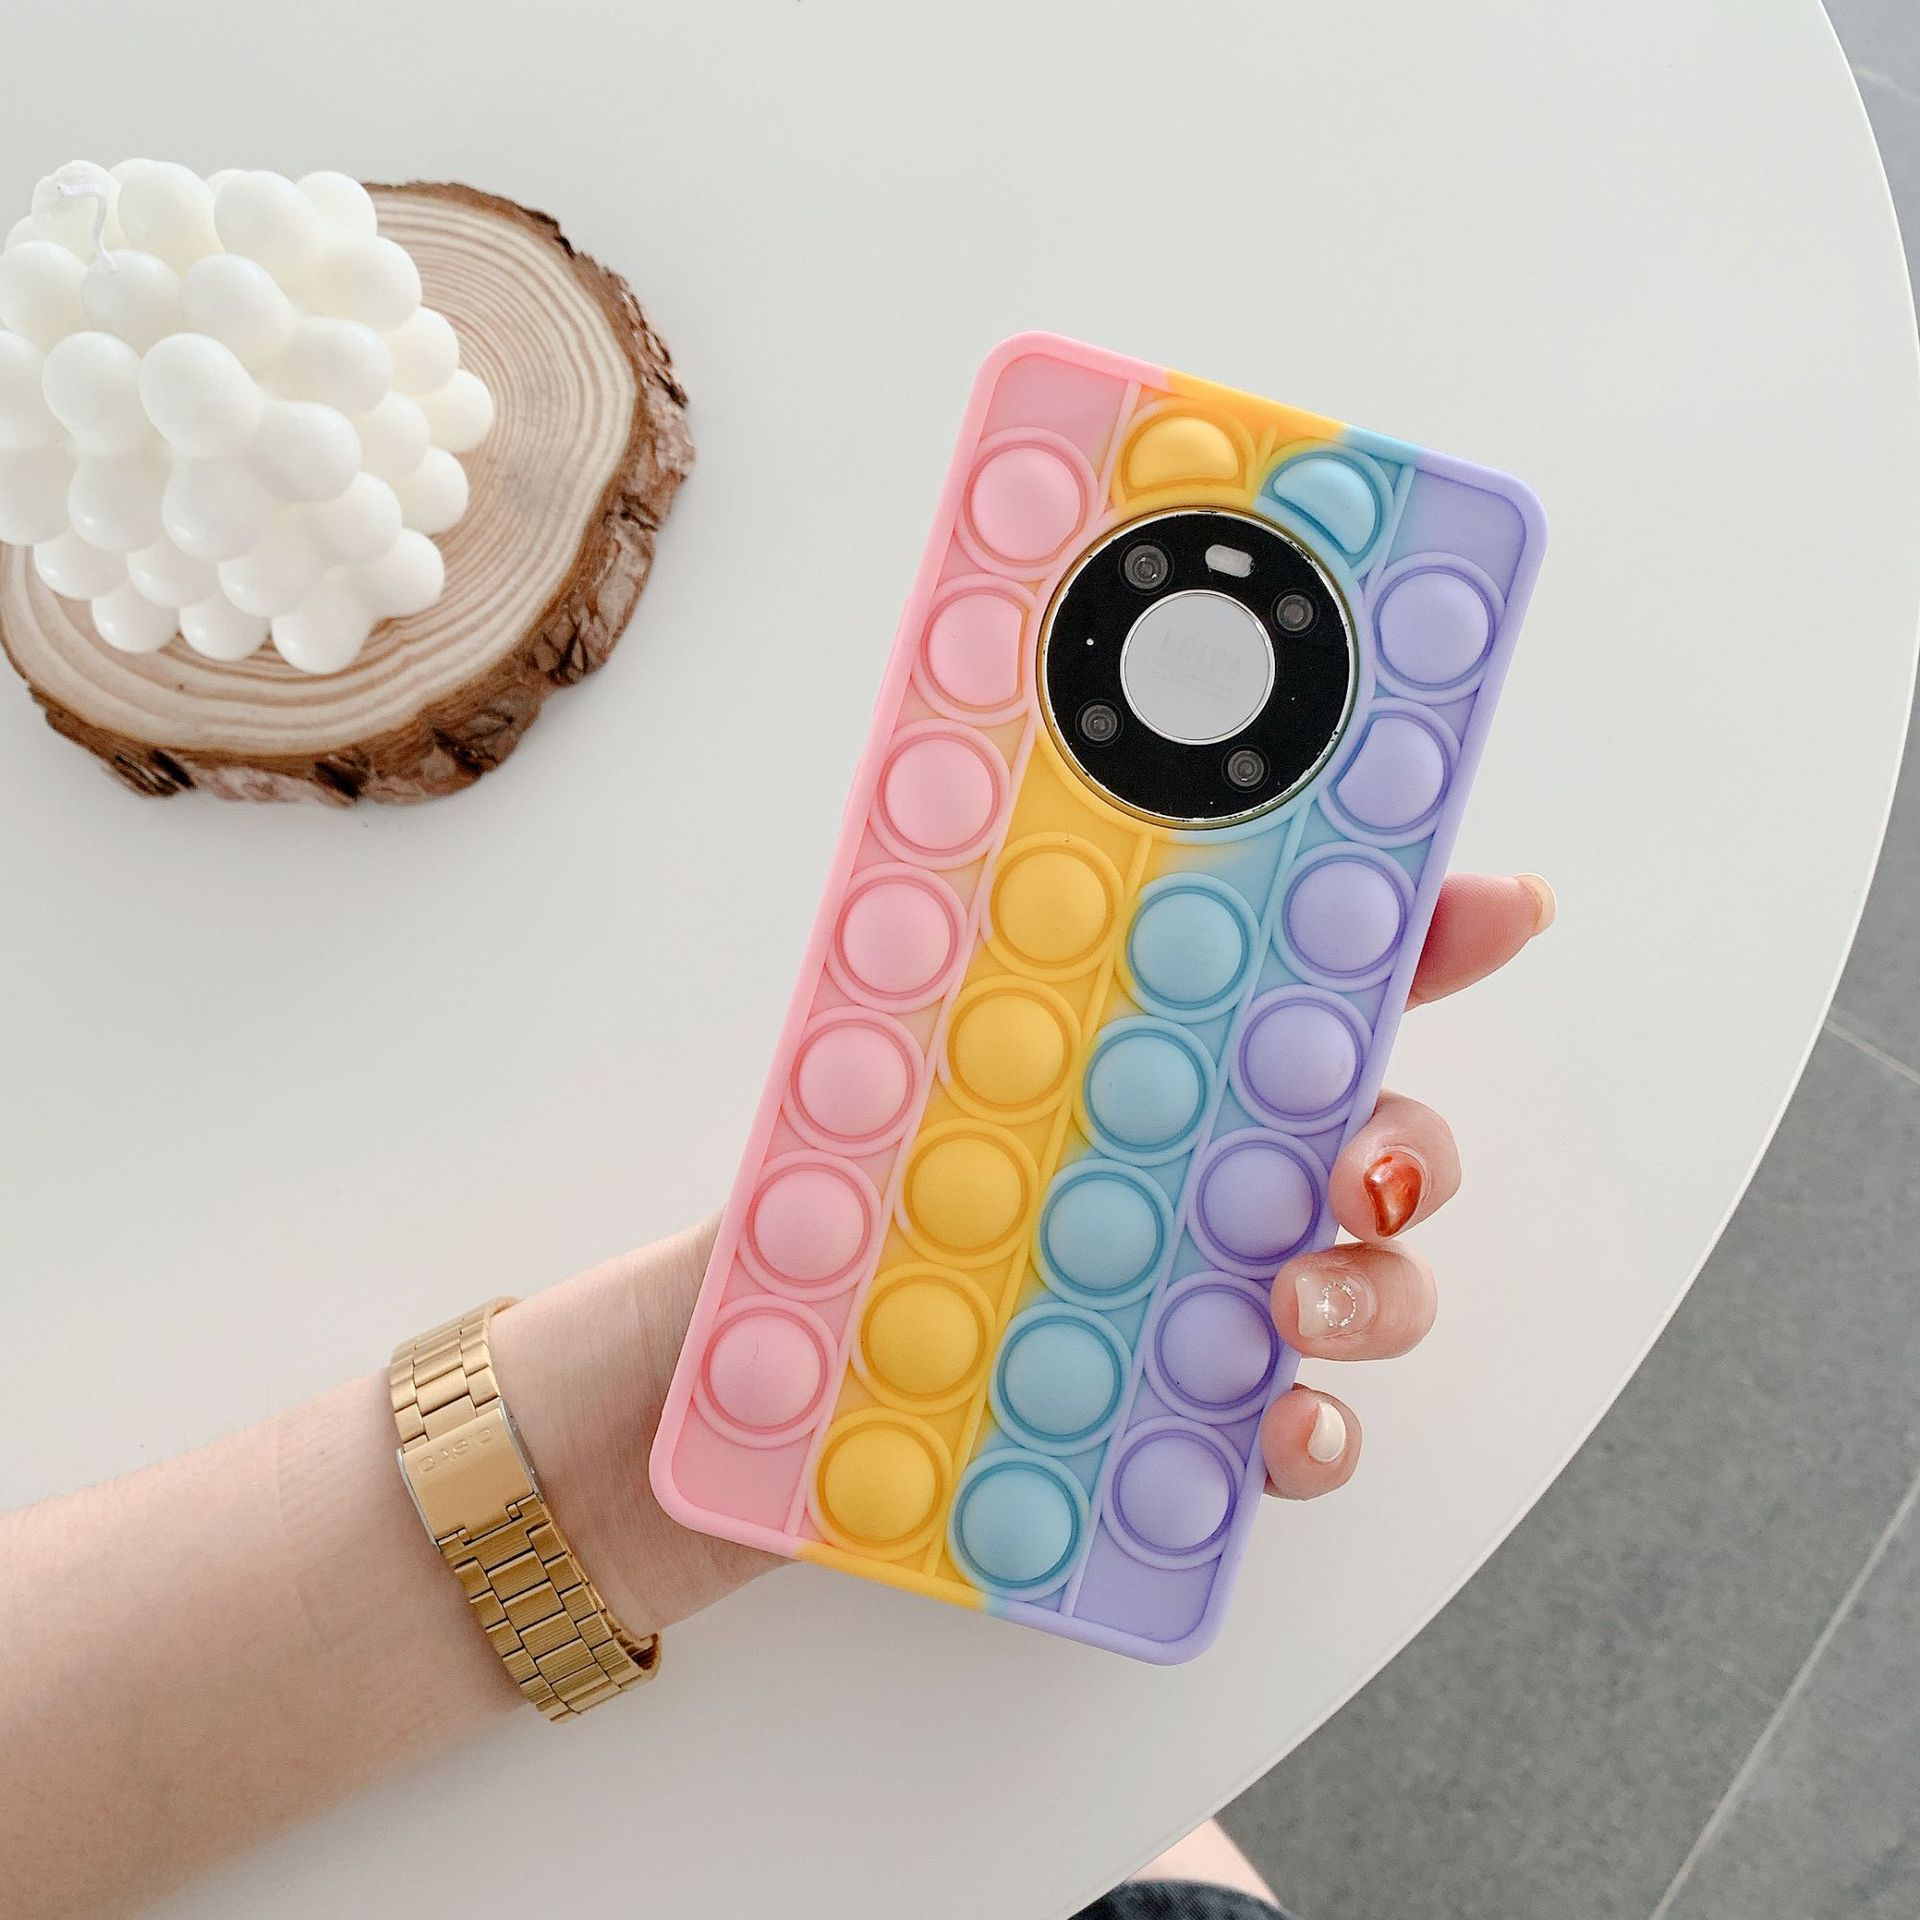 pop it anti stress multi color silicone phone case for huawei fidget toys 1582 - Wacky Track